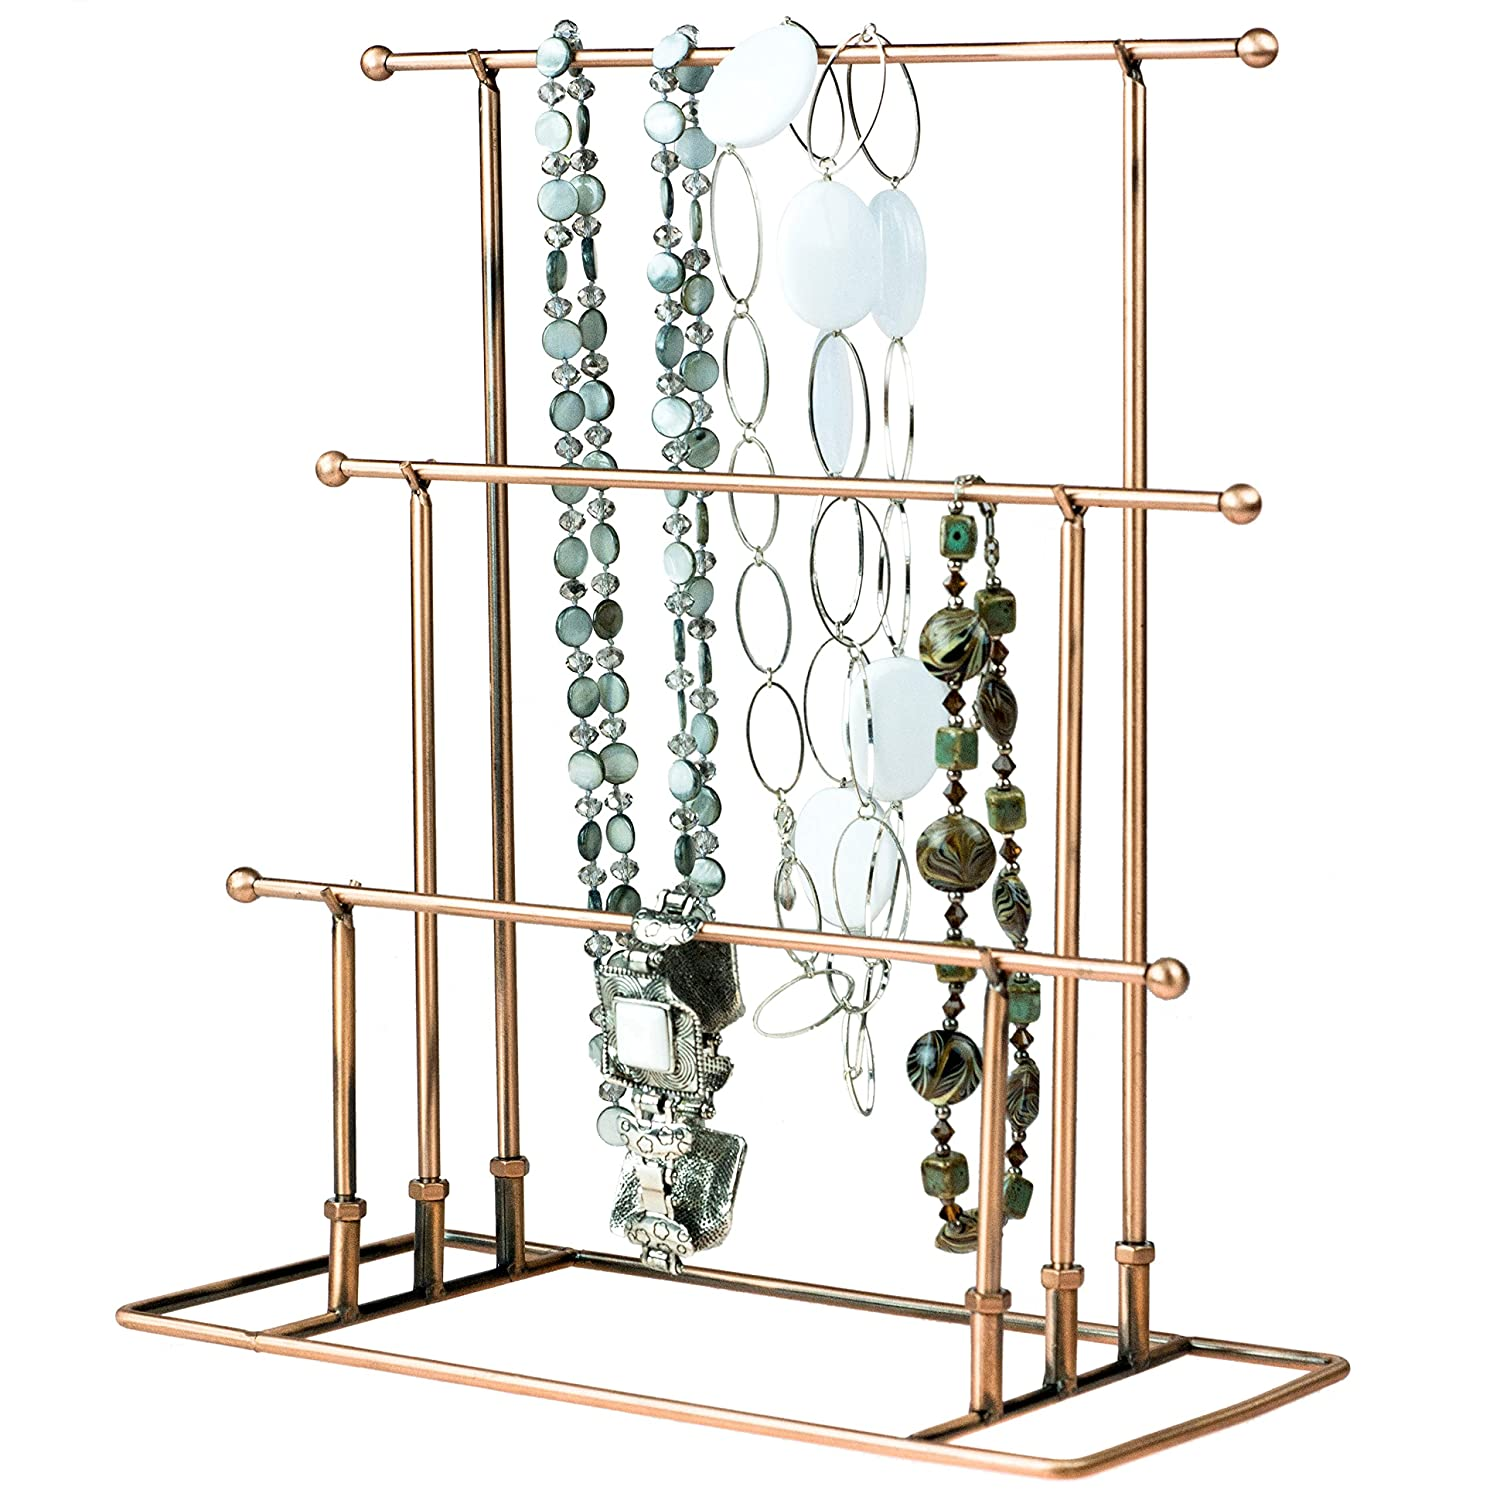 13 inch Bronze Metal 3-Tier Necklace Bracelet Holder Jewelry Tower Hanger Organizer Display Rack MyGift TB-J0027BRZ